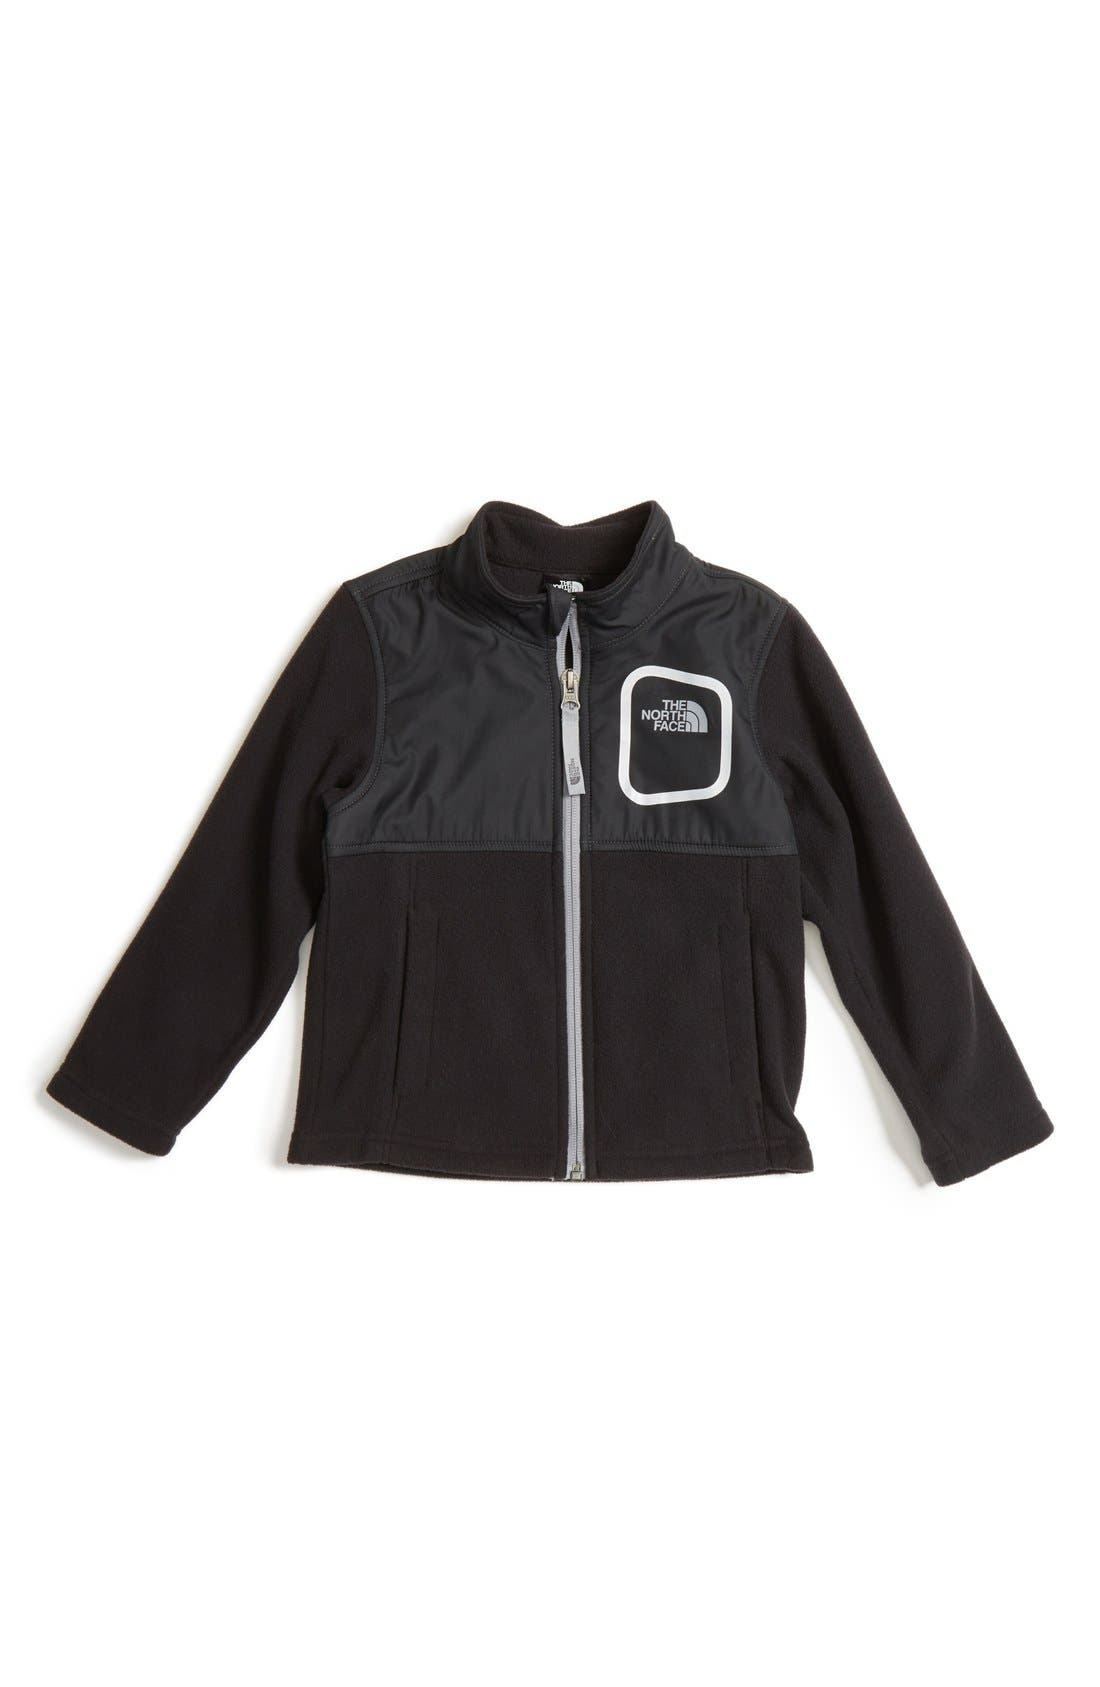 Main Image - The North Face Peril Glacier Microfleece Track Jacket (Toddler Boys & Little Boys)